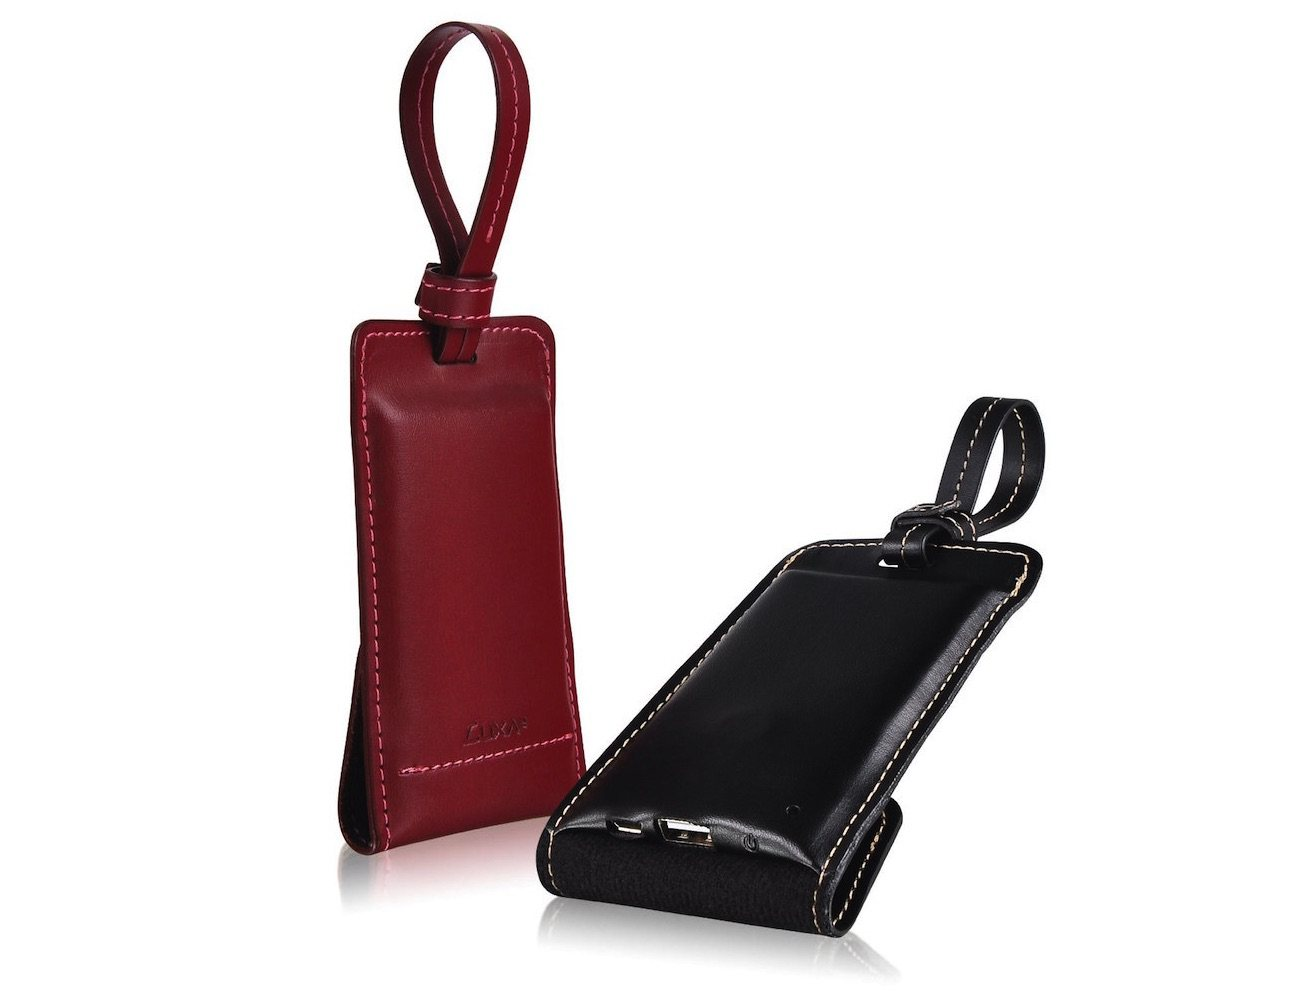 leather-bag-tag-battery-power-pack-03